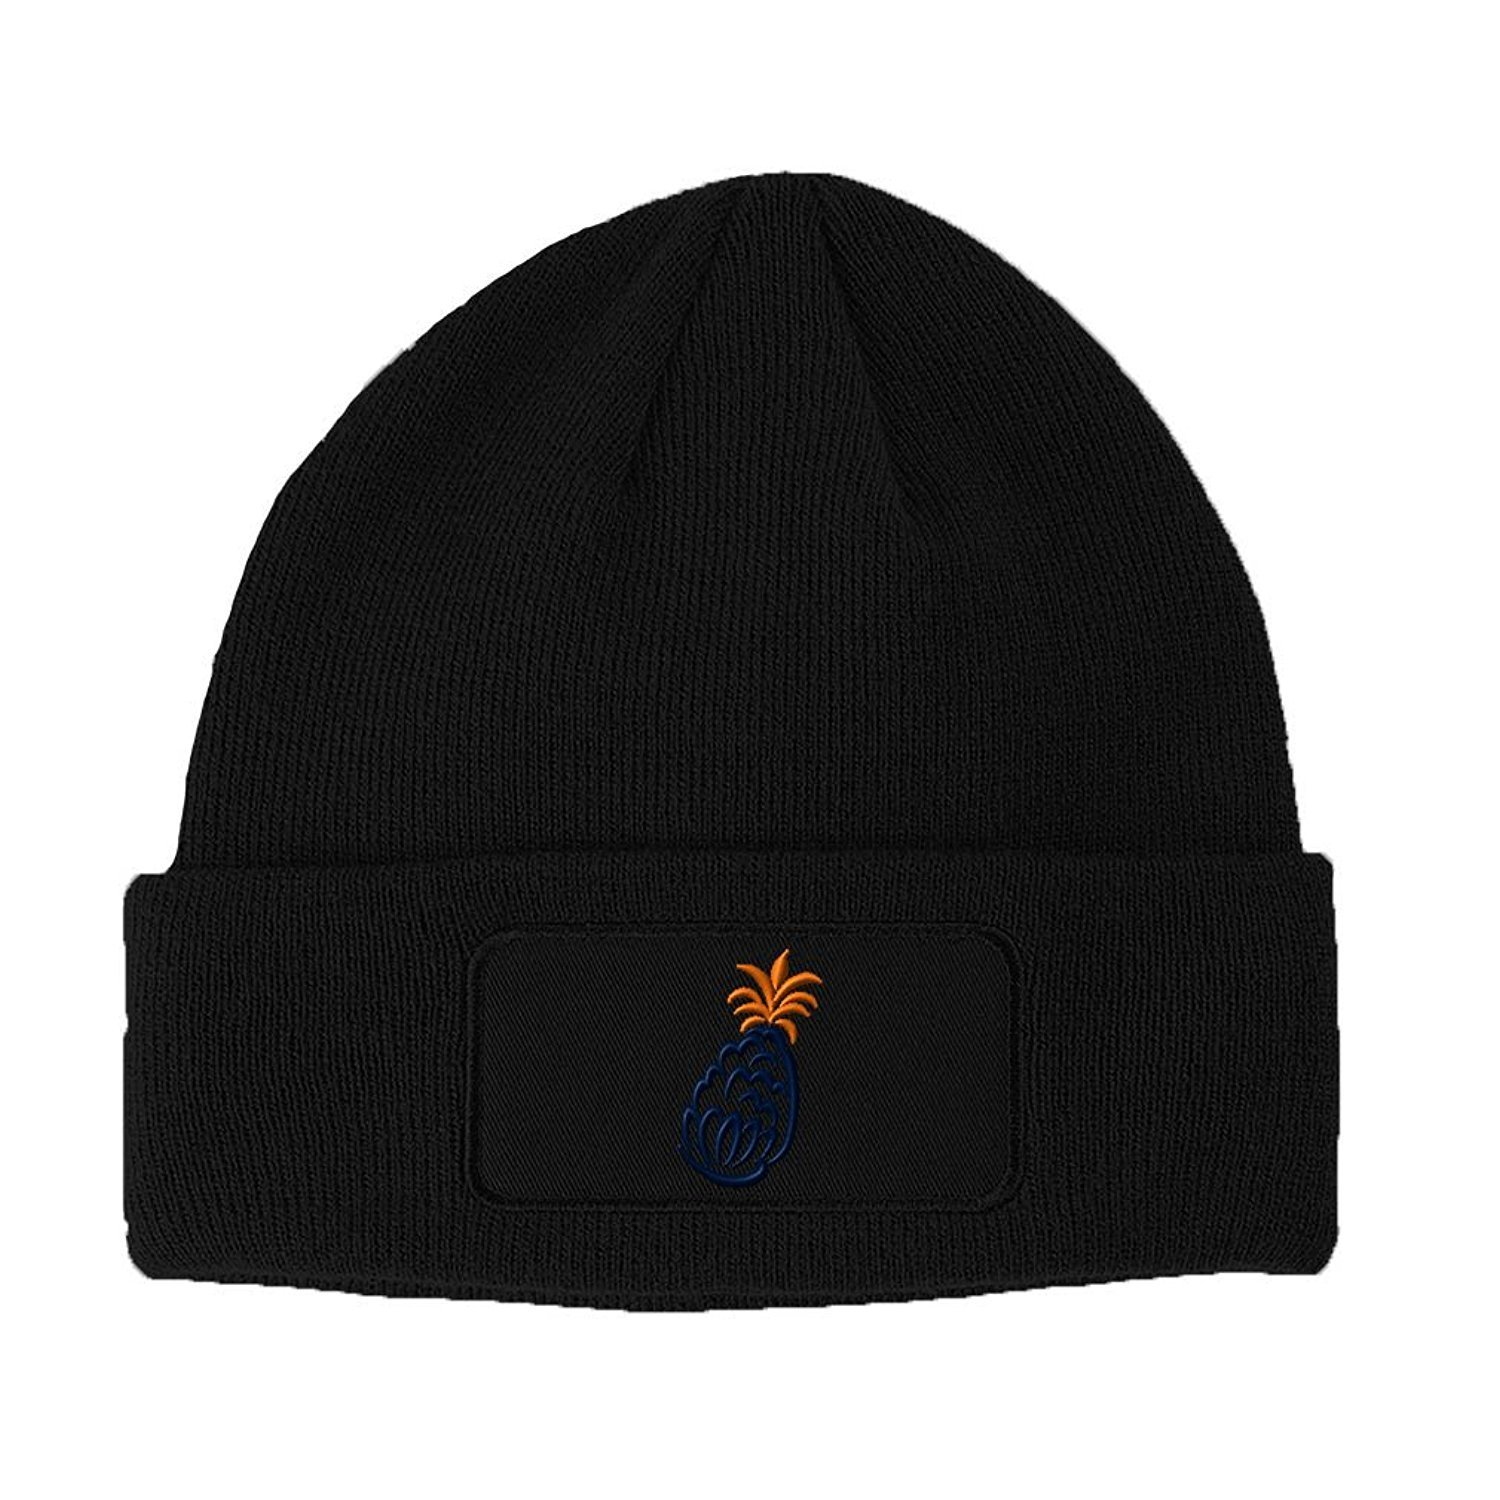 Brilliant Food Fruit Navy Pineapple Embroidery Double Layer Acrylic Patch Beanie